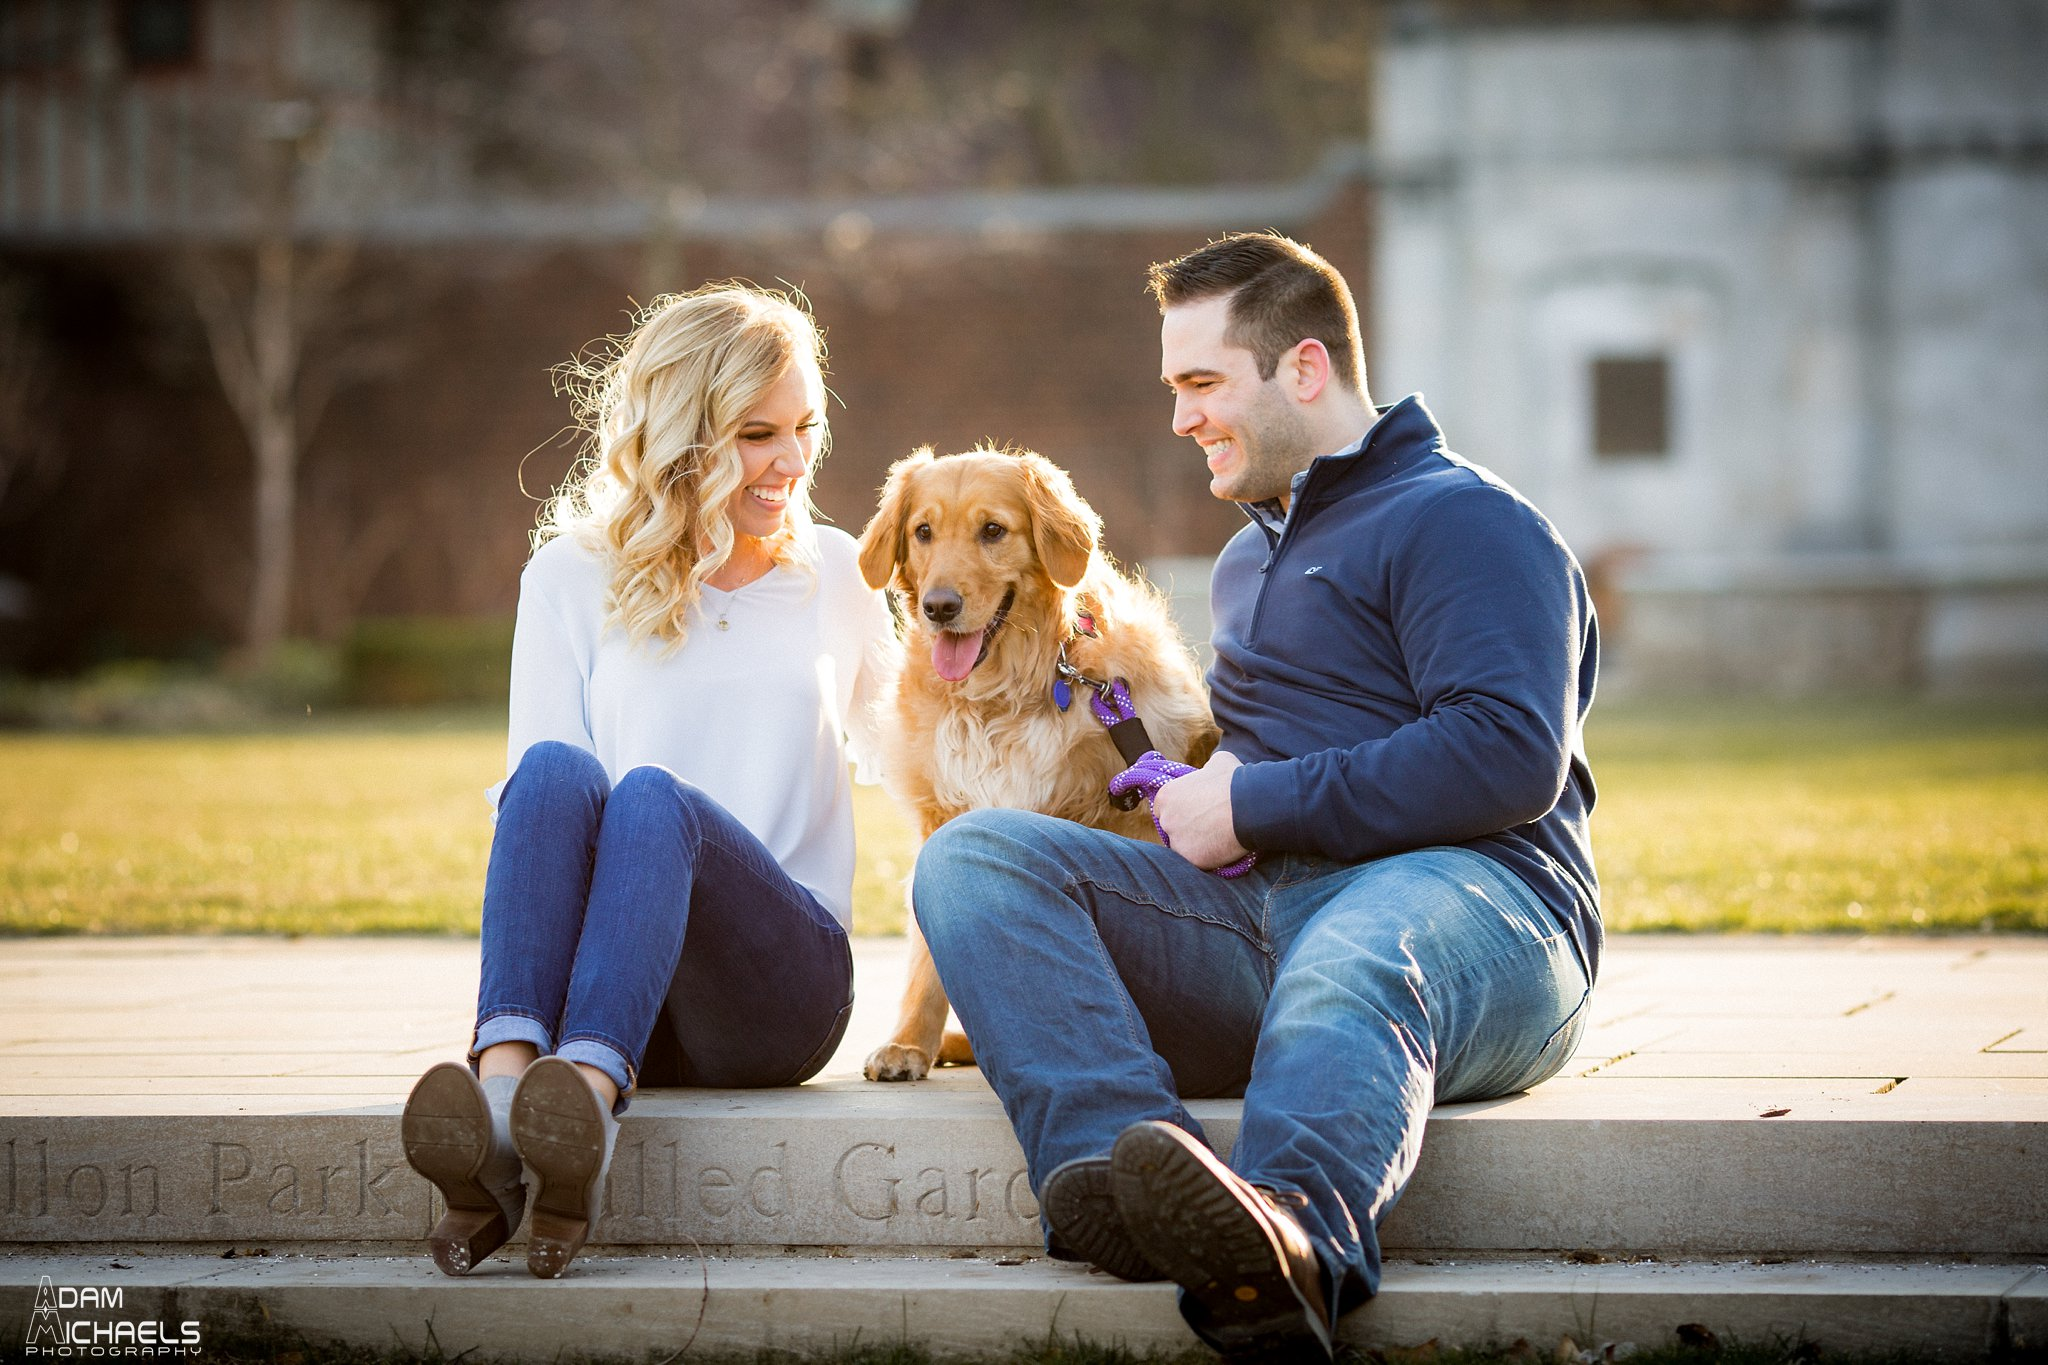 Mellon Park Engagement Save the Date Photos-15.jpg